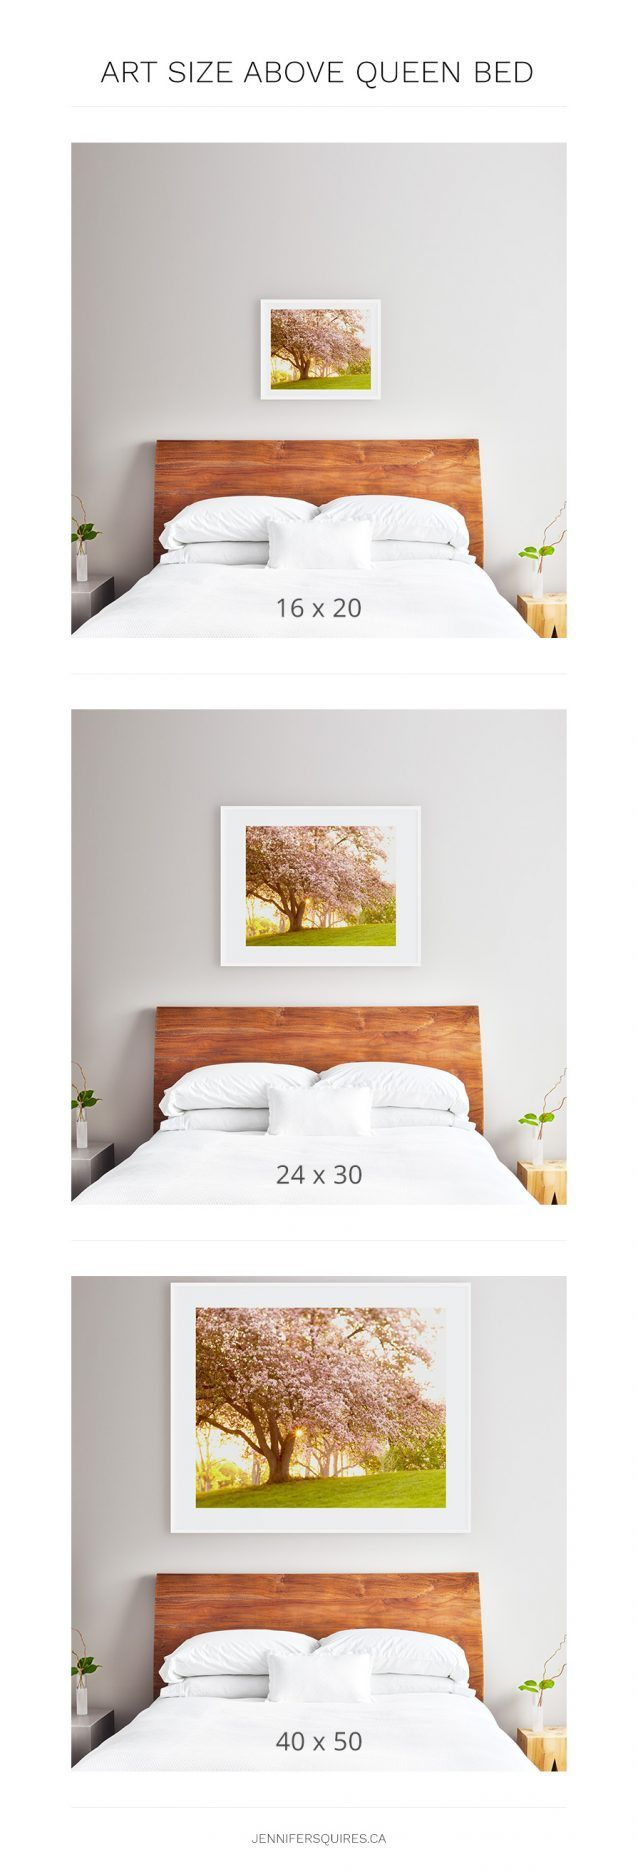 Best Art Size For Above A Queen Bed Bedroom Art Above Bed Above Bed Decor Art Above Bed